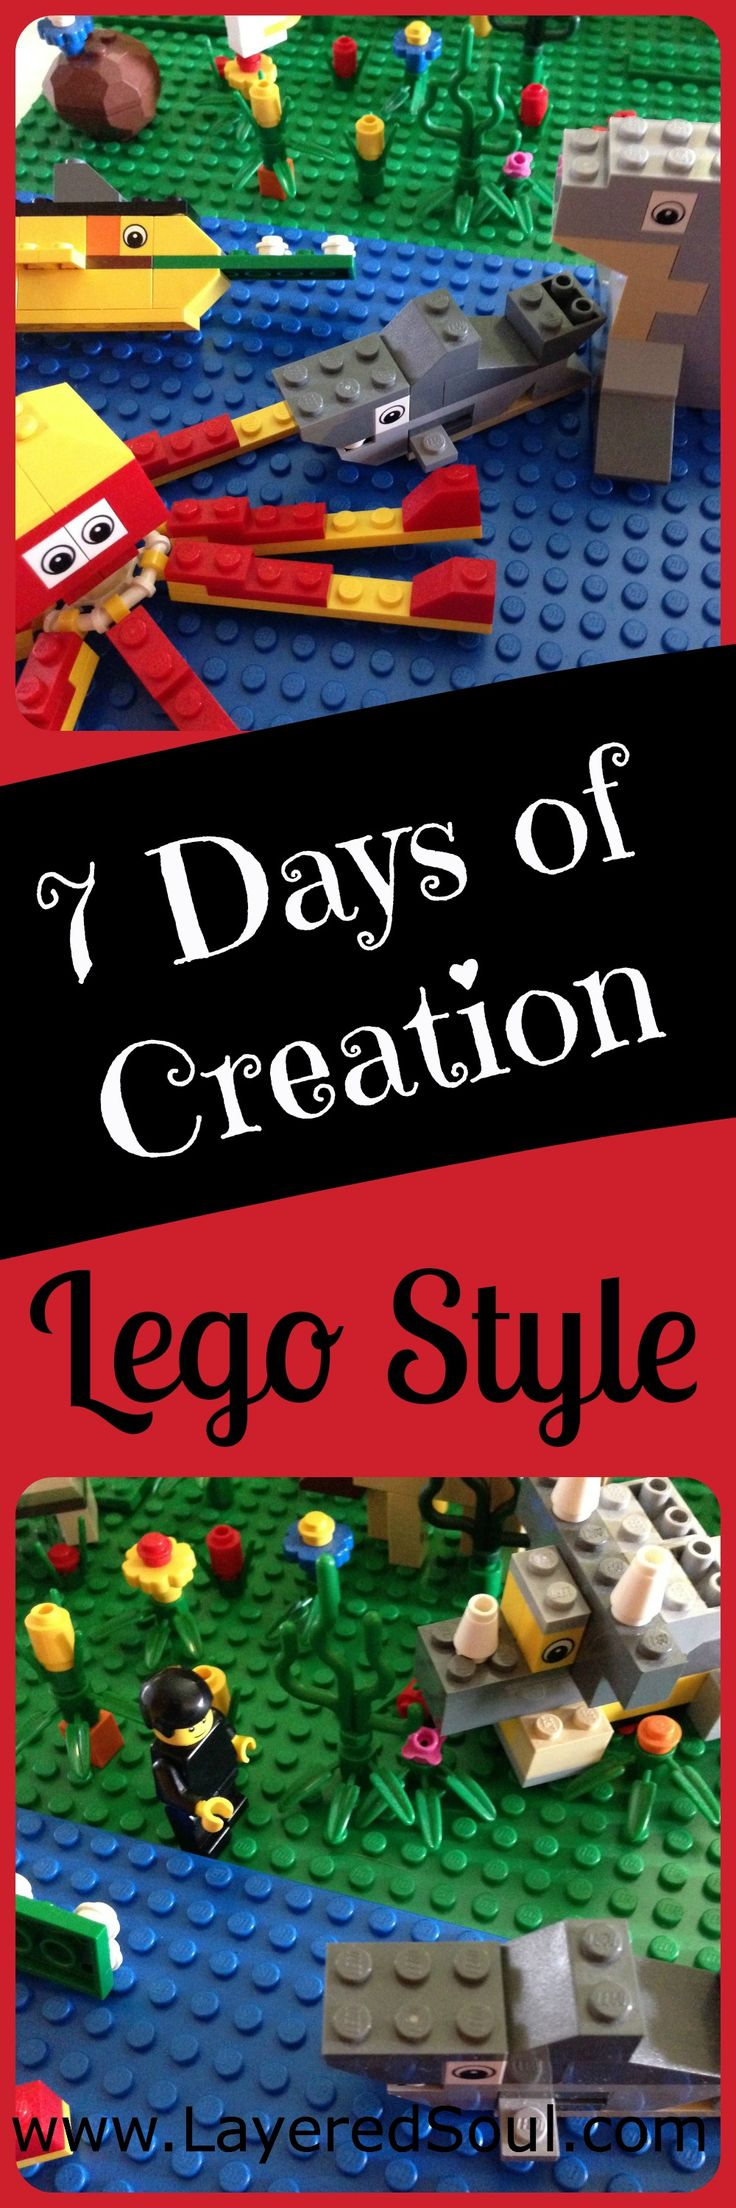 7 Days of Creation Project